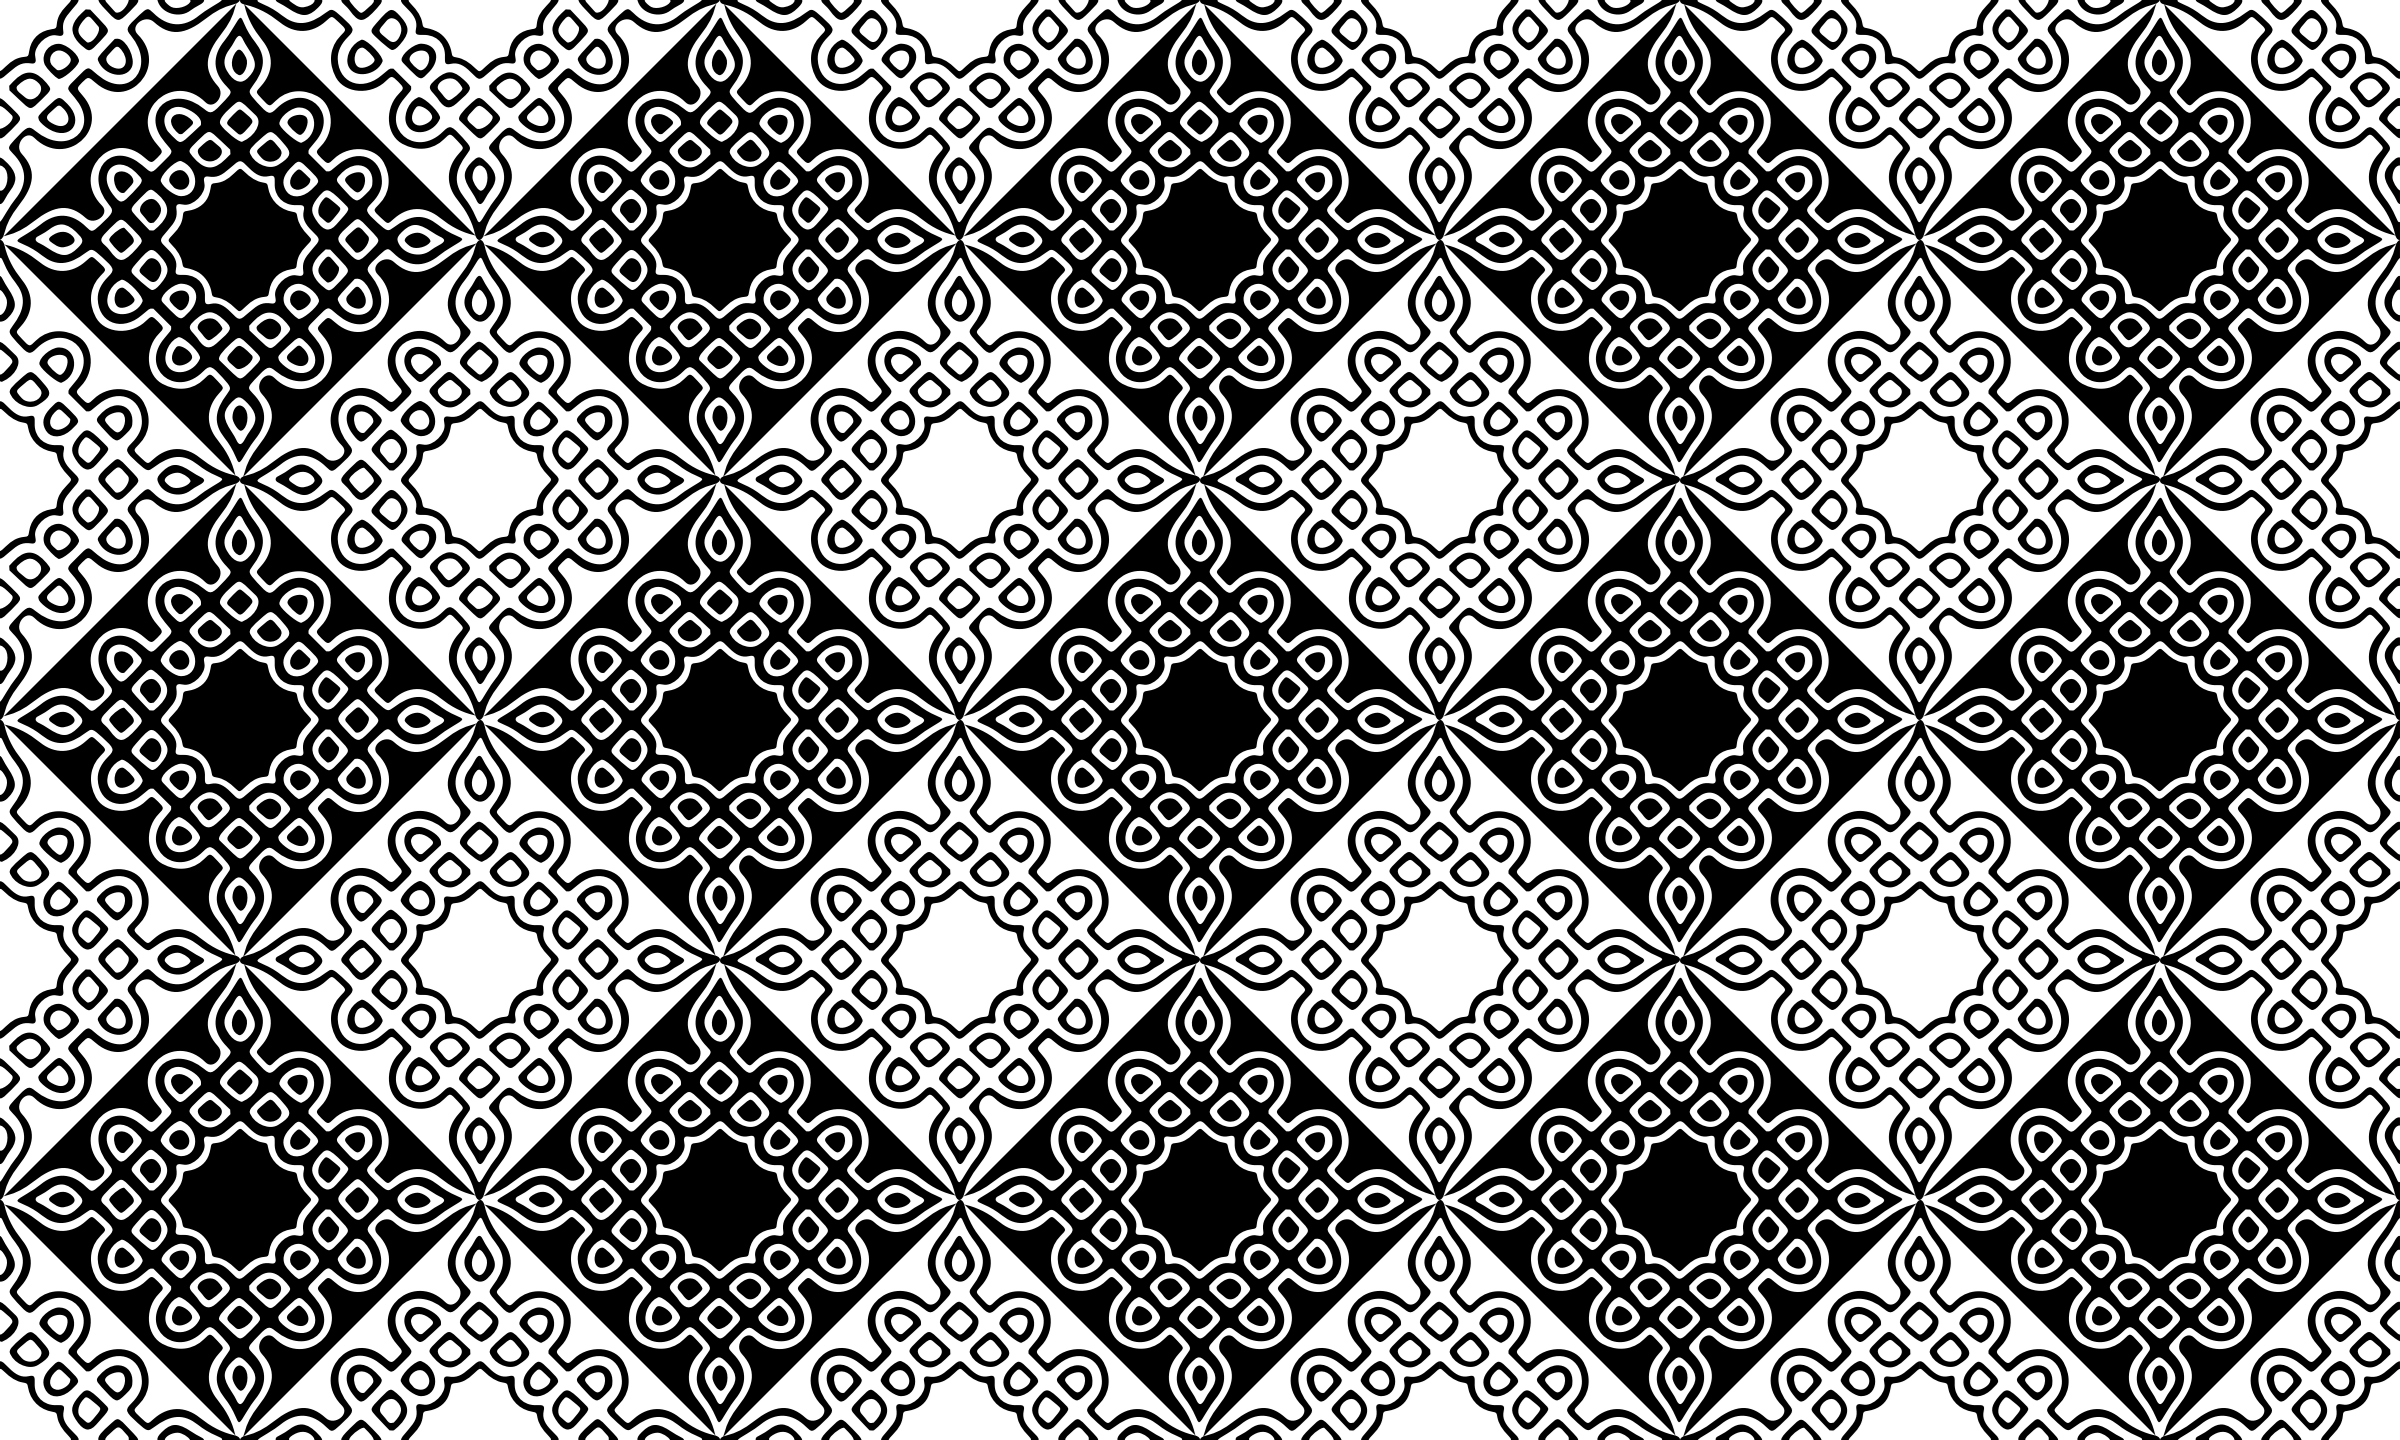 Background pattern 277 (black and white) by Firkin